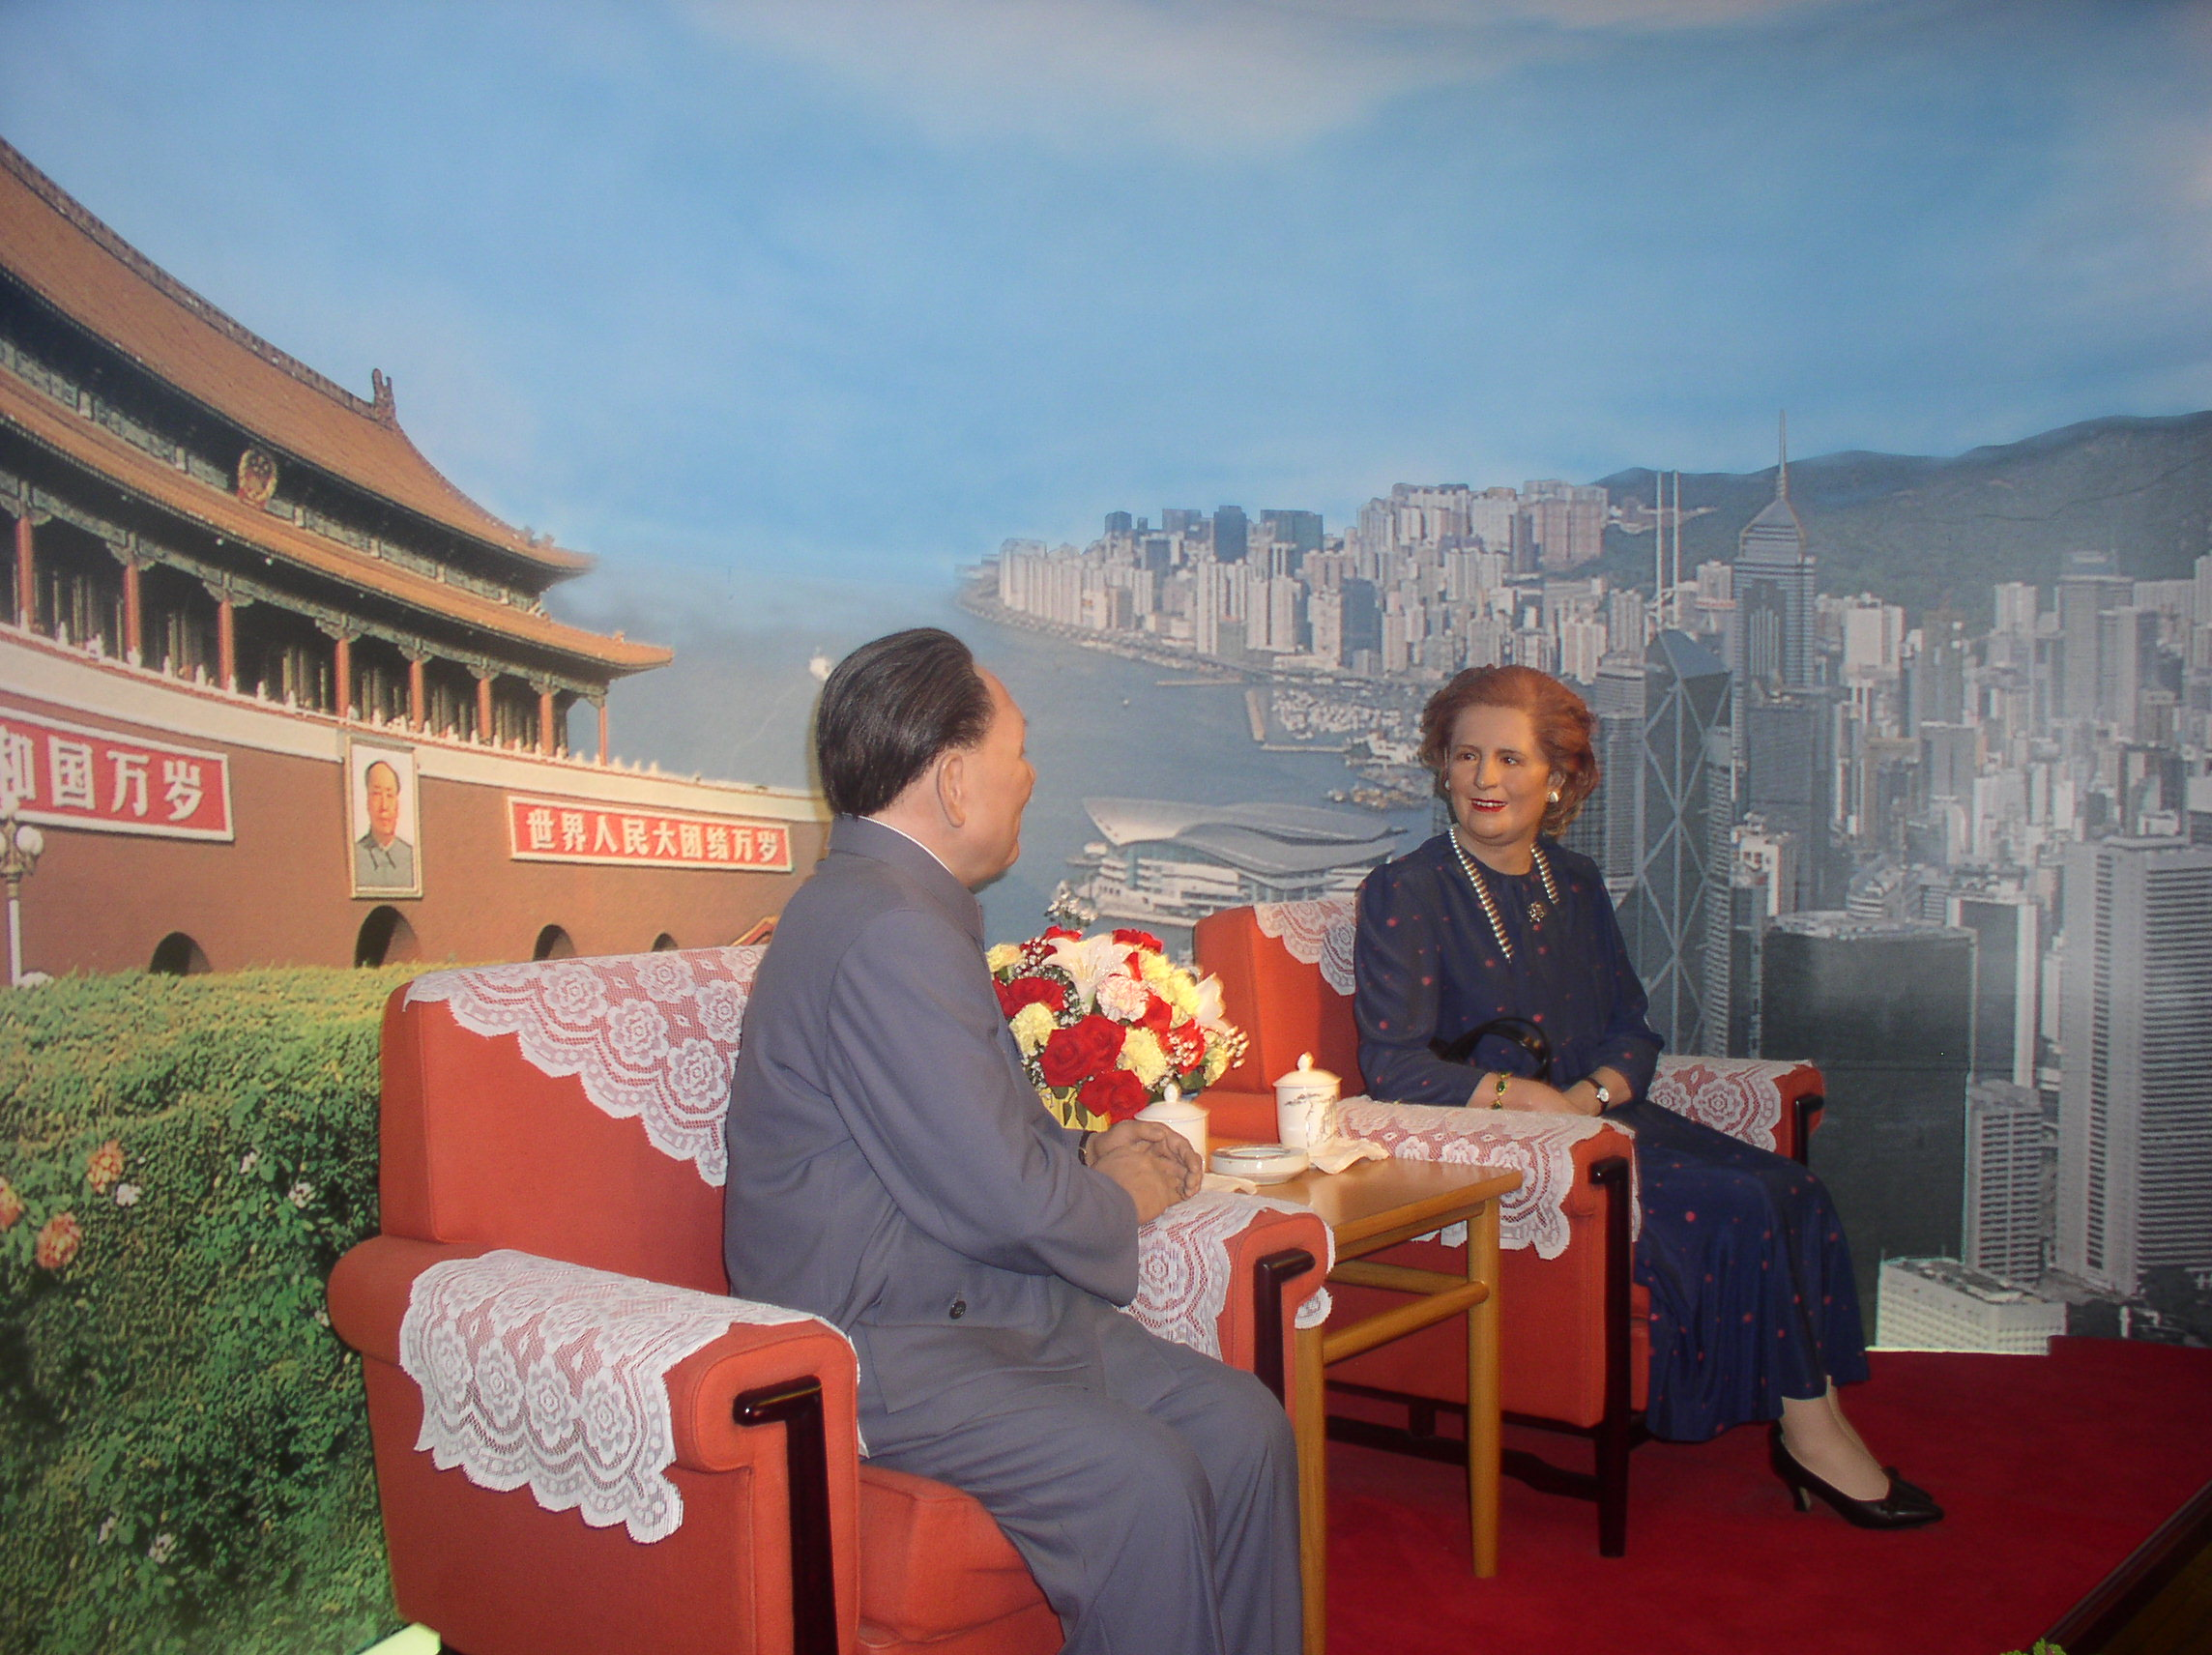 Model reconstruction of Deng Xiaoping's meeting with British Prime Minister Margaret Thatcher